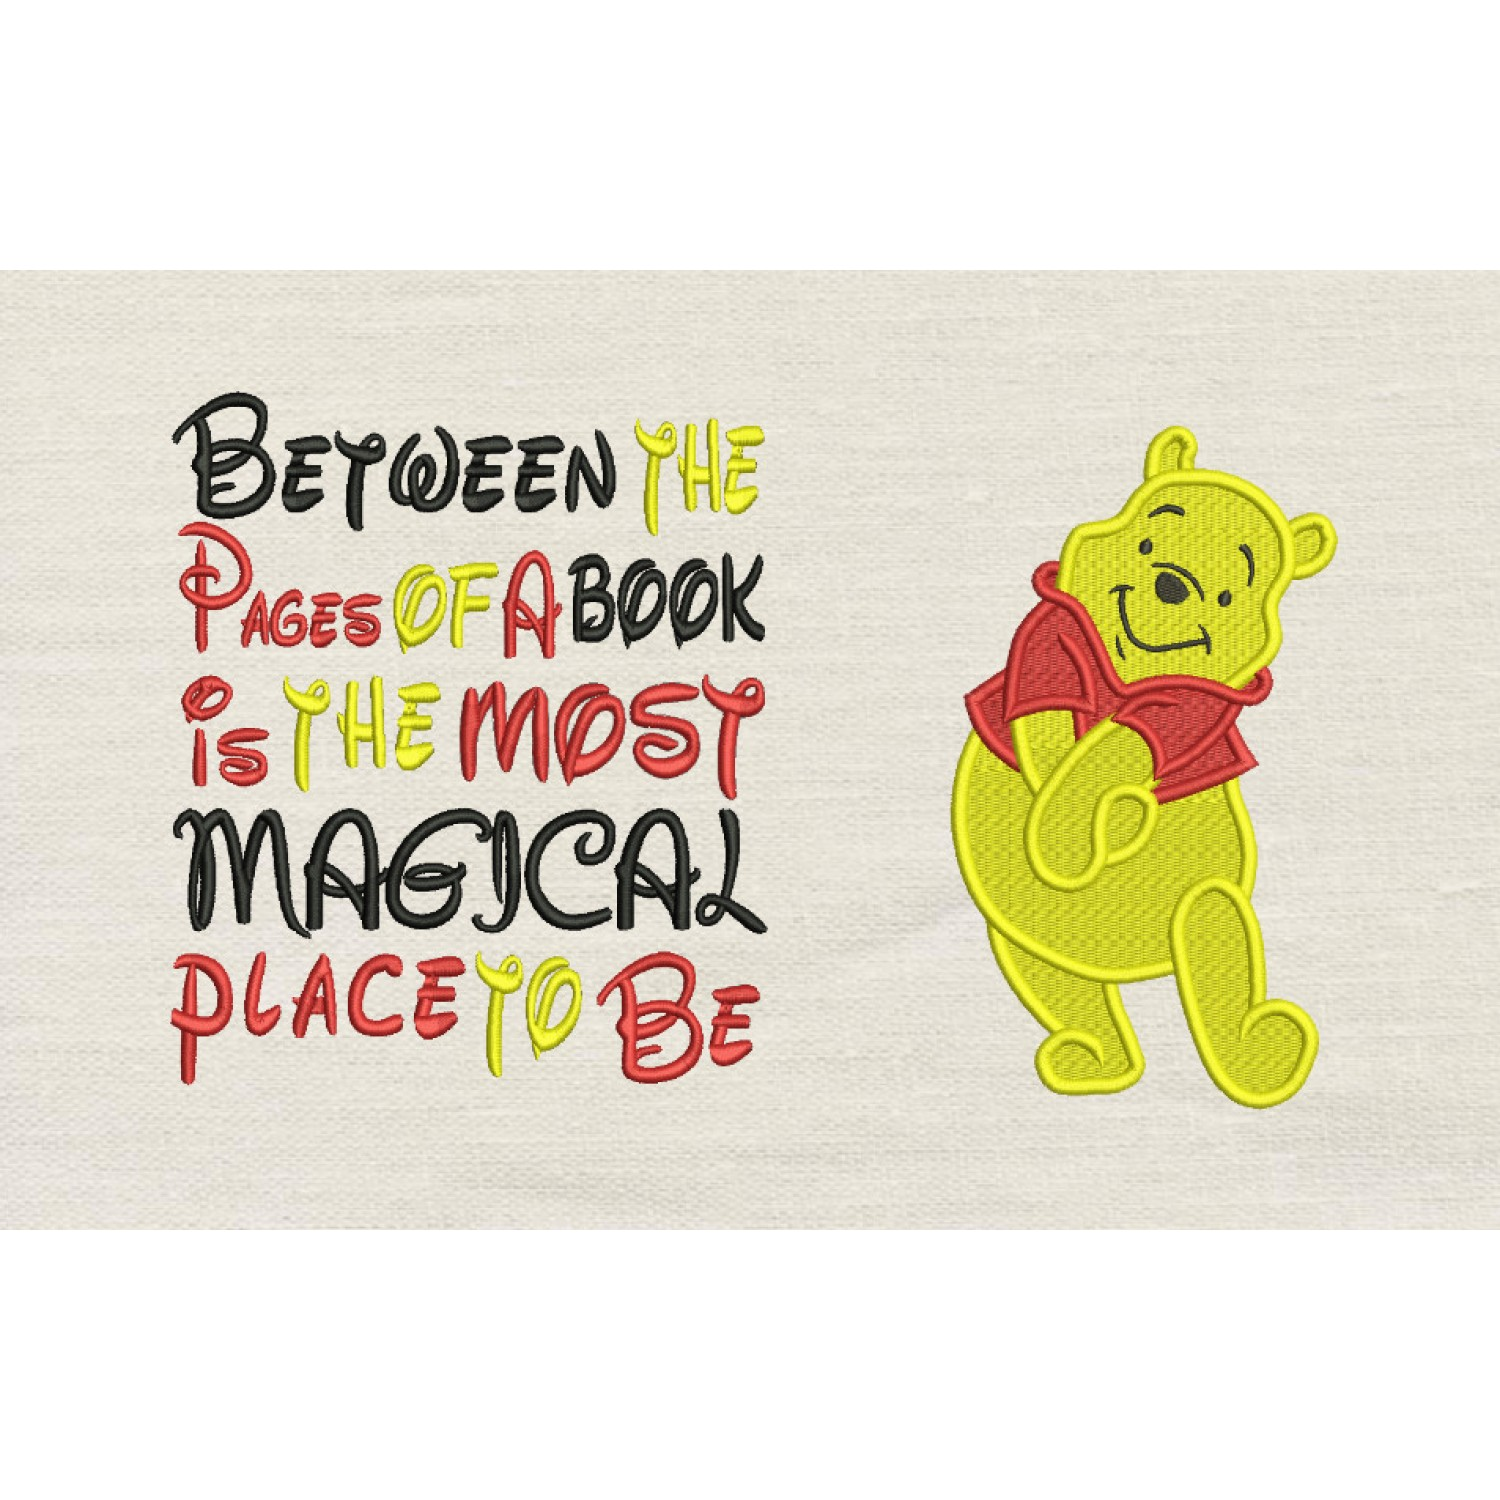 Pooh embroidery with Between the Pages